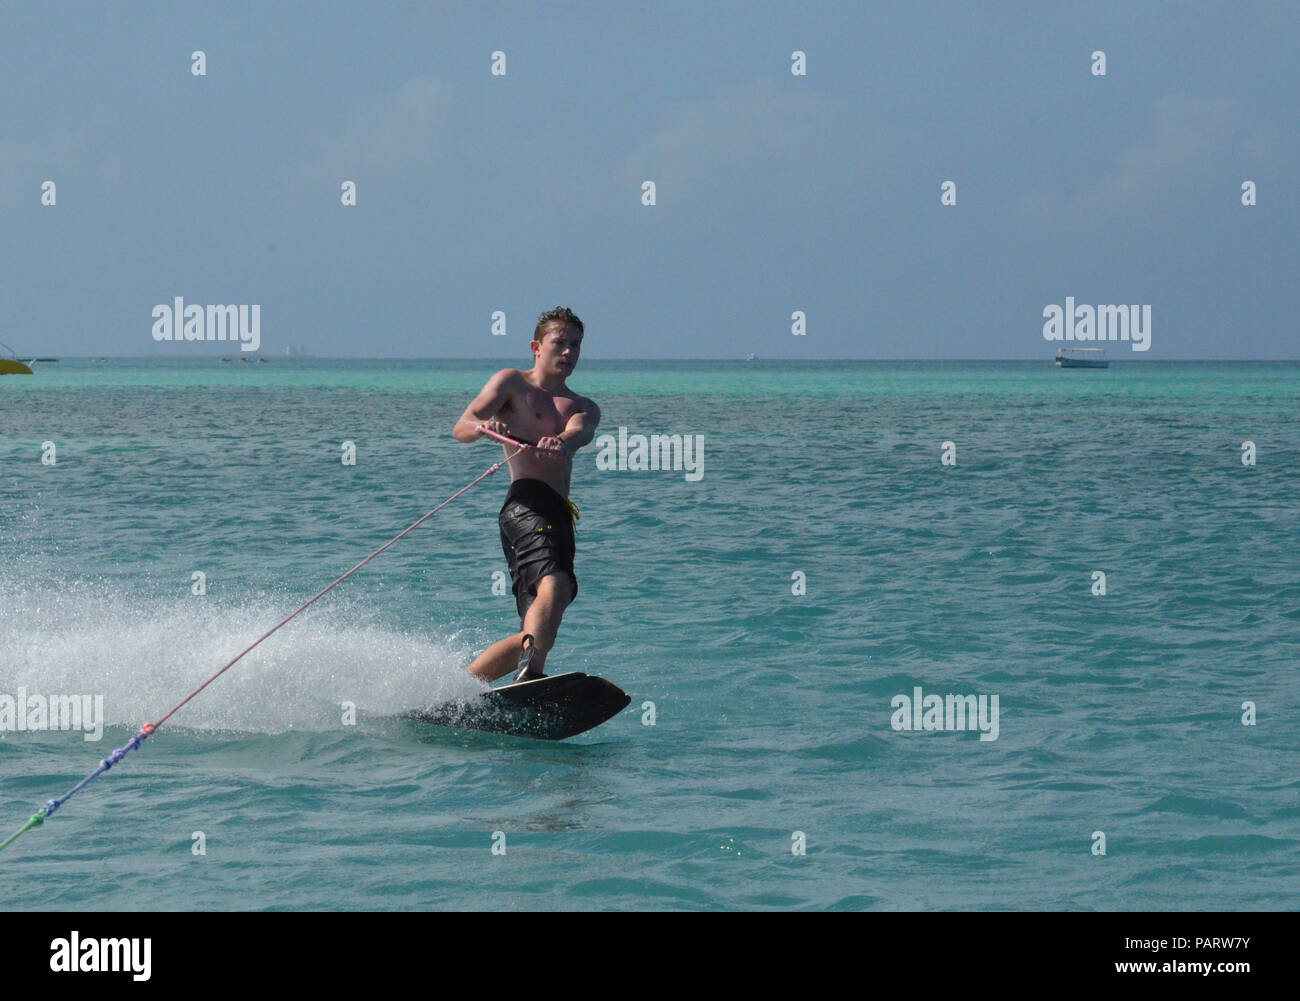 Young Aruba wakeboarder with black swim shorts in the water. - Stock Image